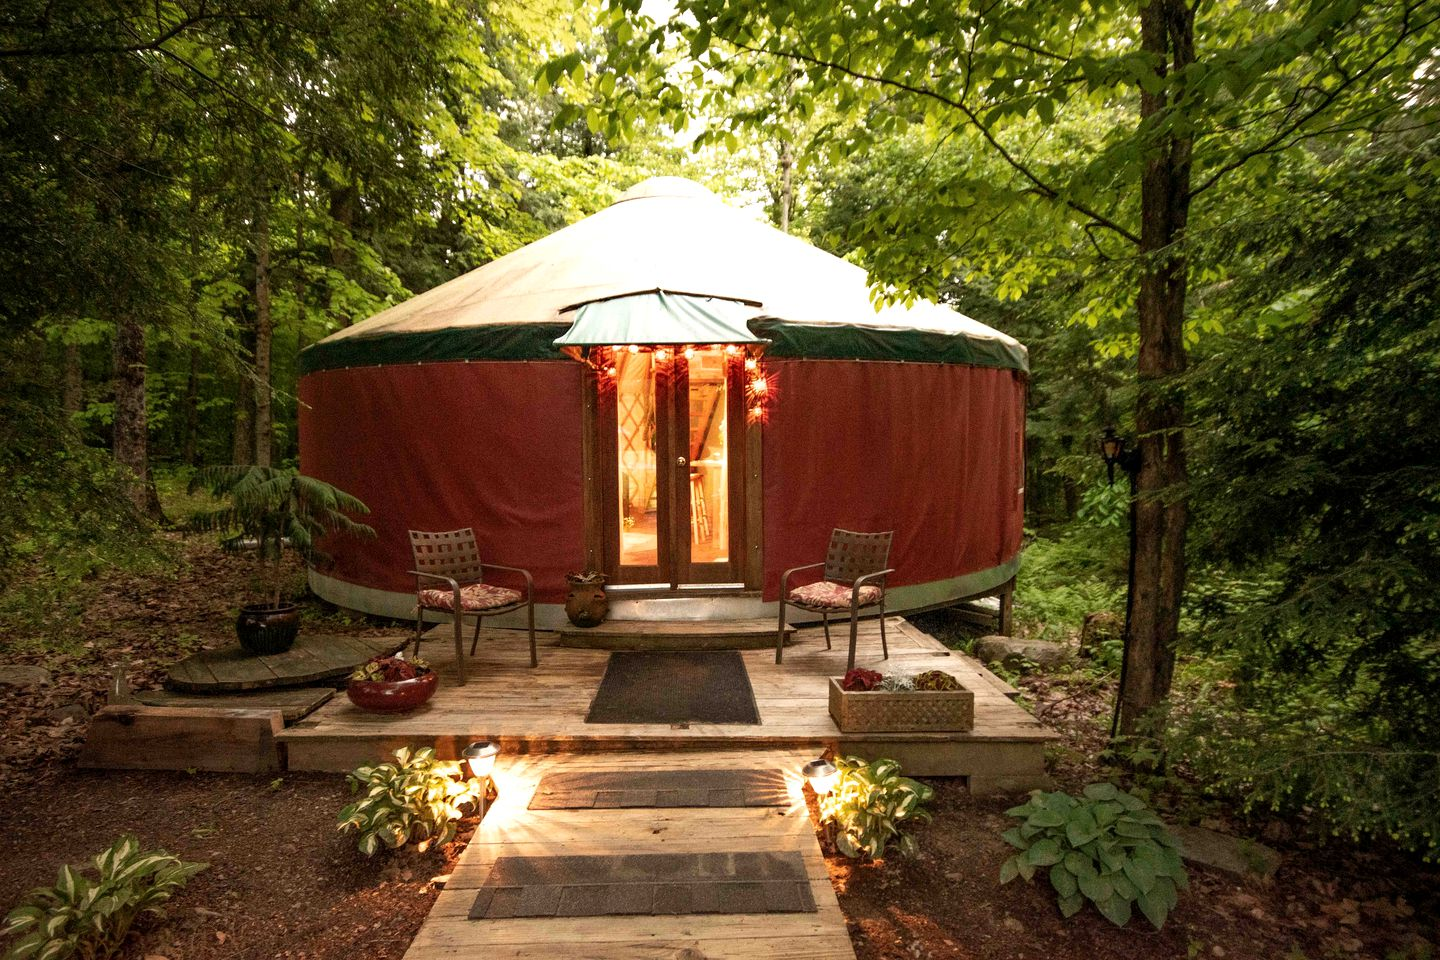 Luxury Yurt Rental Near Bristol Vermont Camping Yurts Experience the unique experience of yurt camping throughout the northwest. luxury yurt rental hidden in the forest near bristol vermont